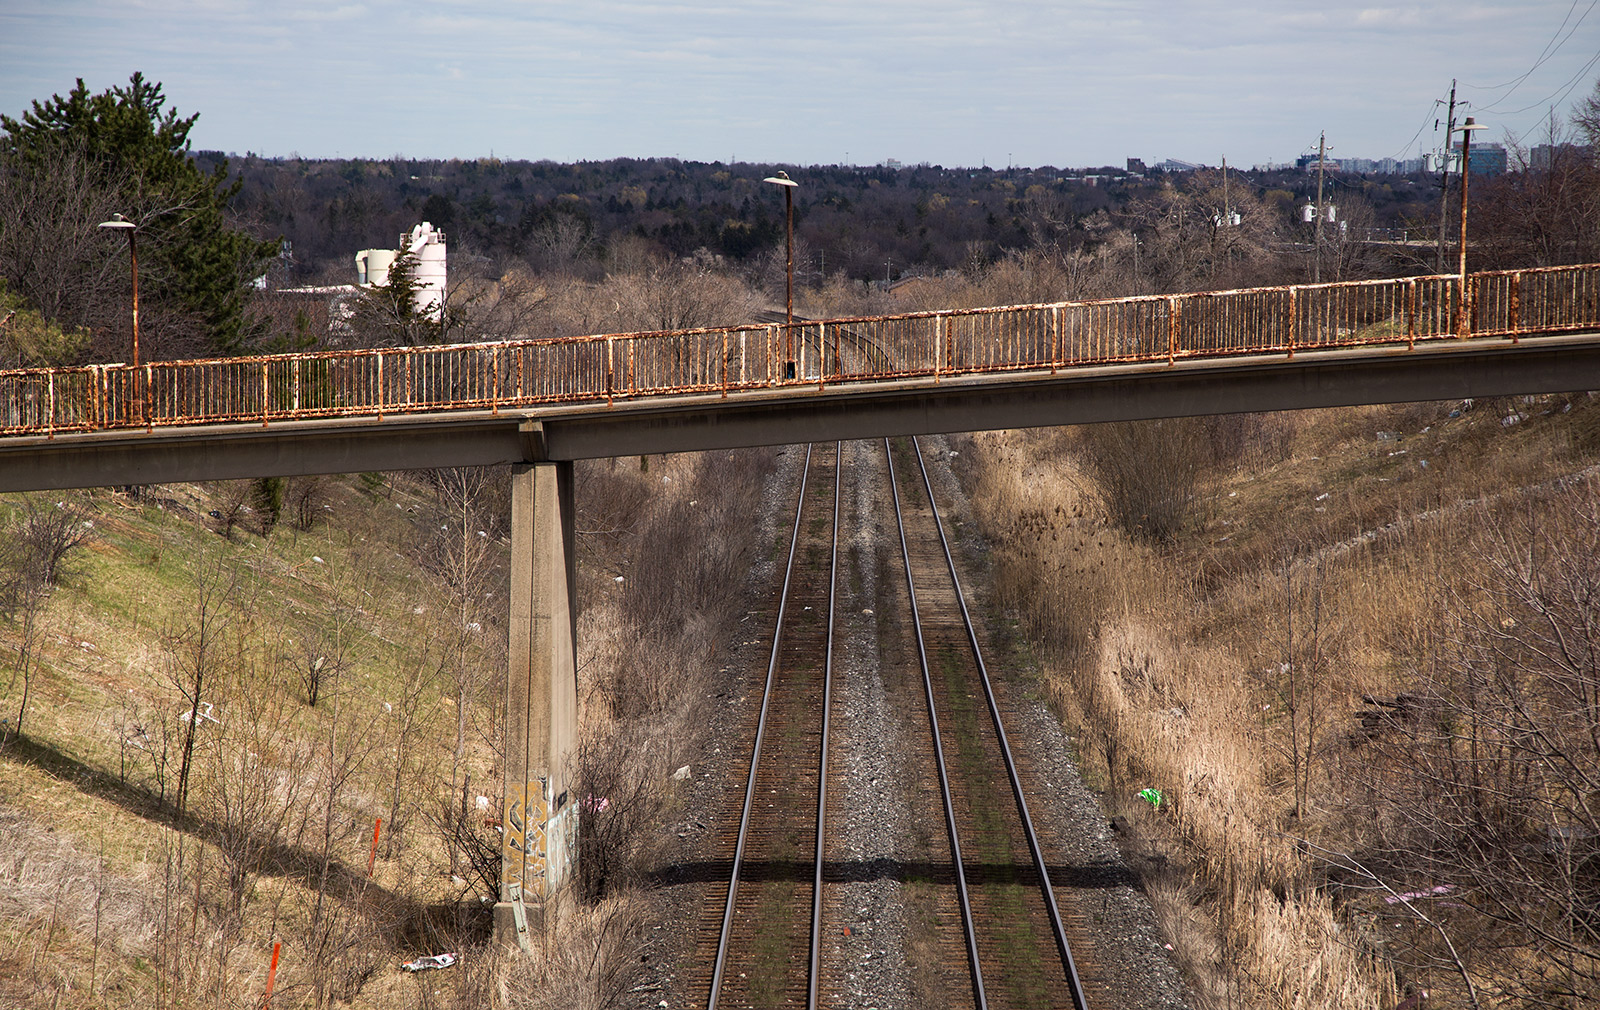 20140502. A side view of rusty, abandoned pedestrian overpass in Thornhill.